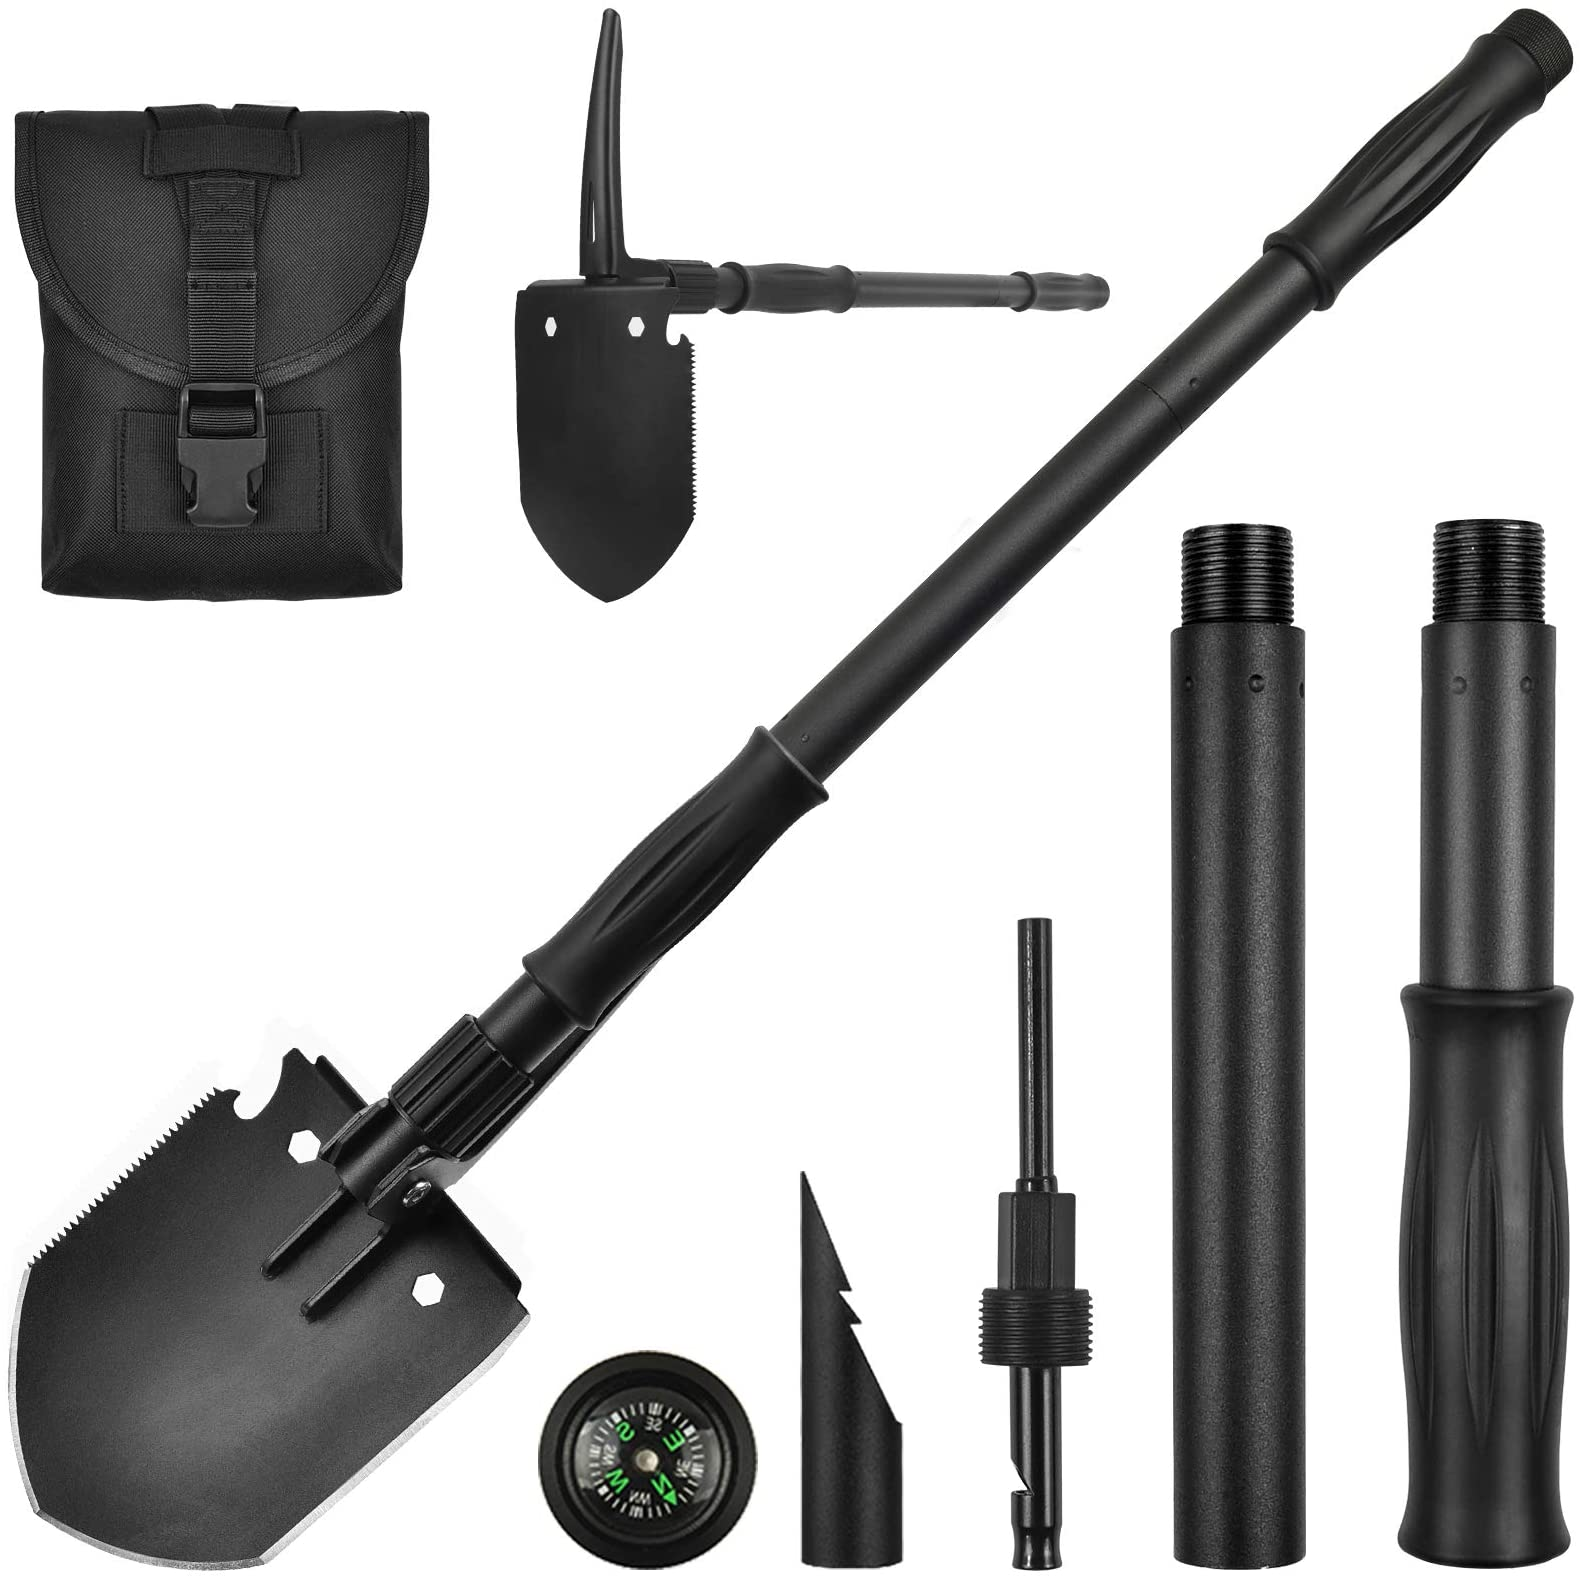 FM/_ MILITARY FOLDING SHOVEL SURVIVAL SPADE CAMPING OUTDOOR MULTIFUNCTIONAL TOOL